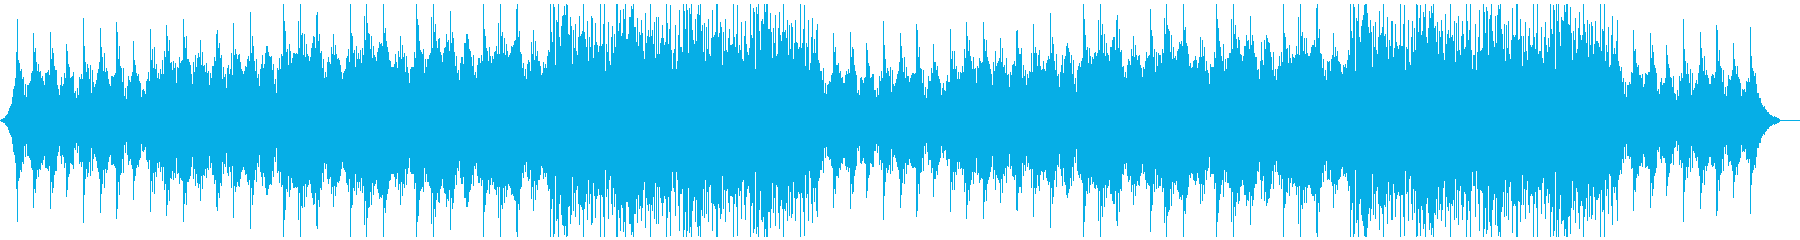 Positive and beautiful violin for school introductions's reproduced waveform